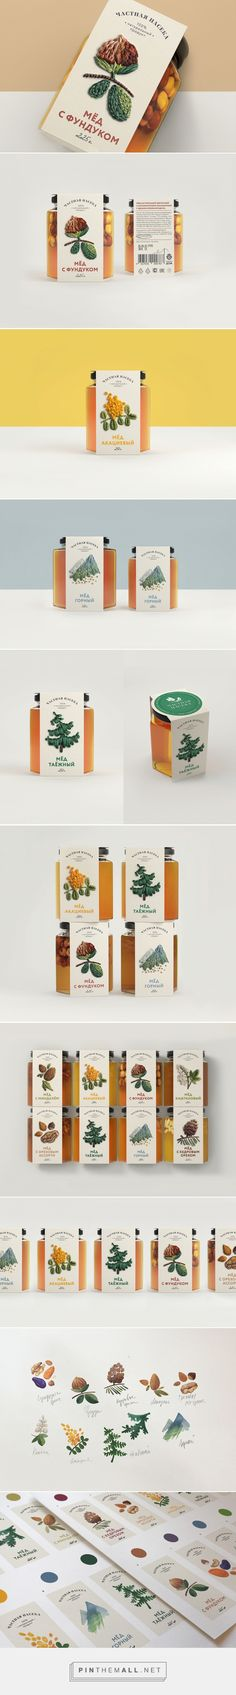 Private Apiary honey by Nastya Lukina and Maxim Petrov. Source: Behance. Pin curated by #SFieds99 #packaging #design #inspiration #honey #traditioanal #label #natural